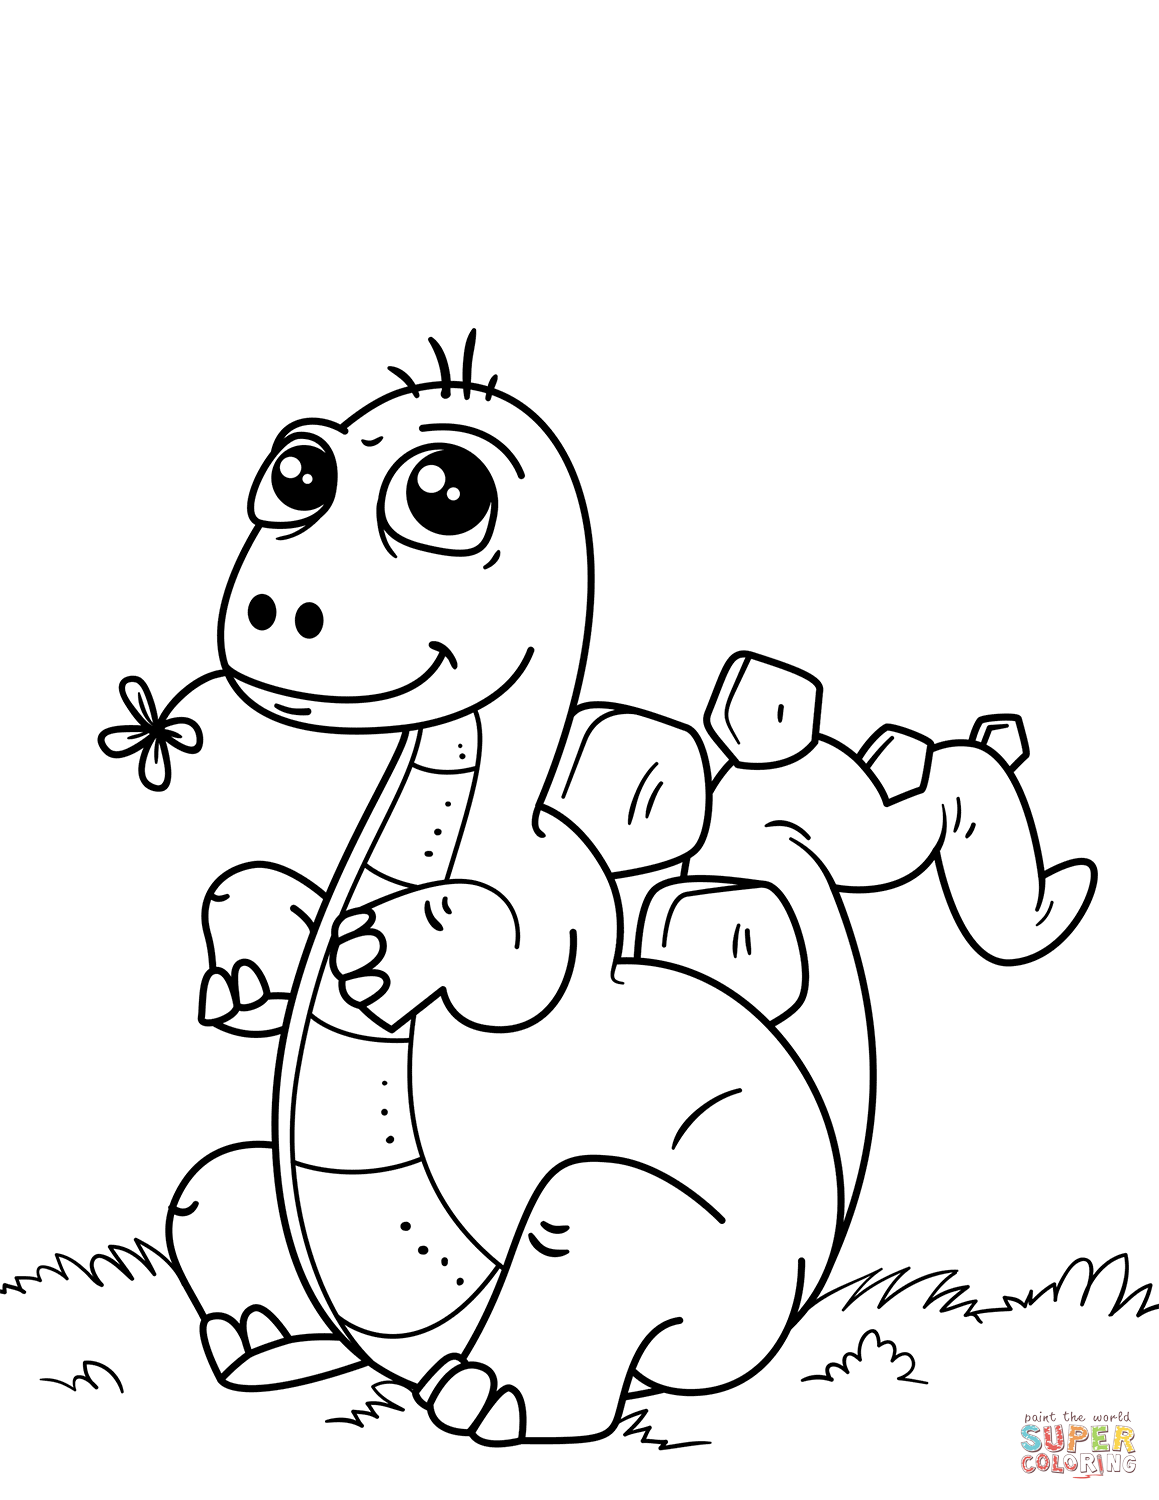 dinosaurs coloring pages printable free printable dinosaur coloring pages printable coloring dinosaurs pages